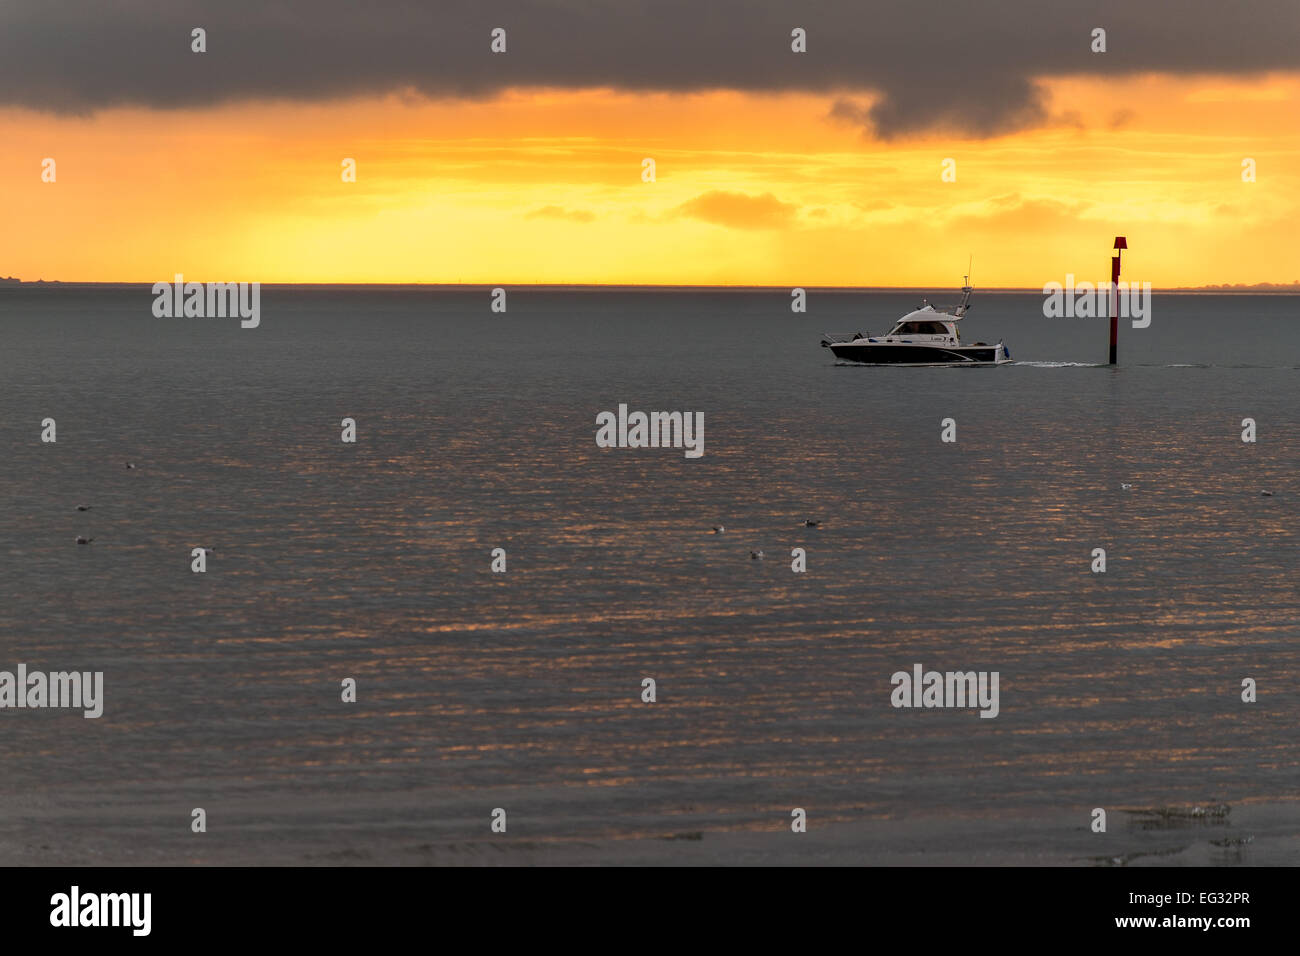 Motor cruiser on the solent during a sunset - Stock Image